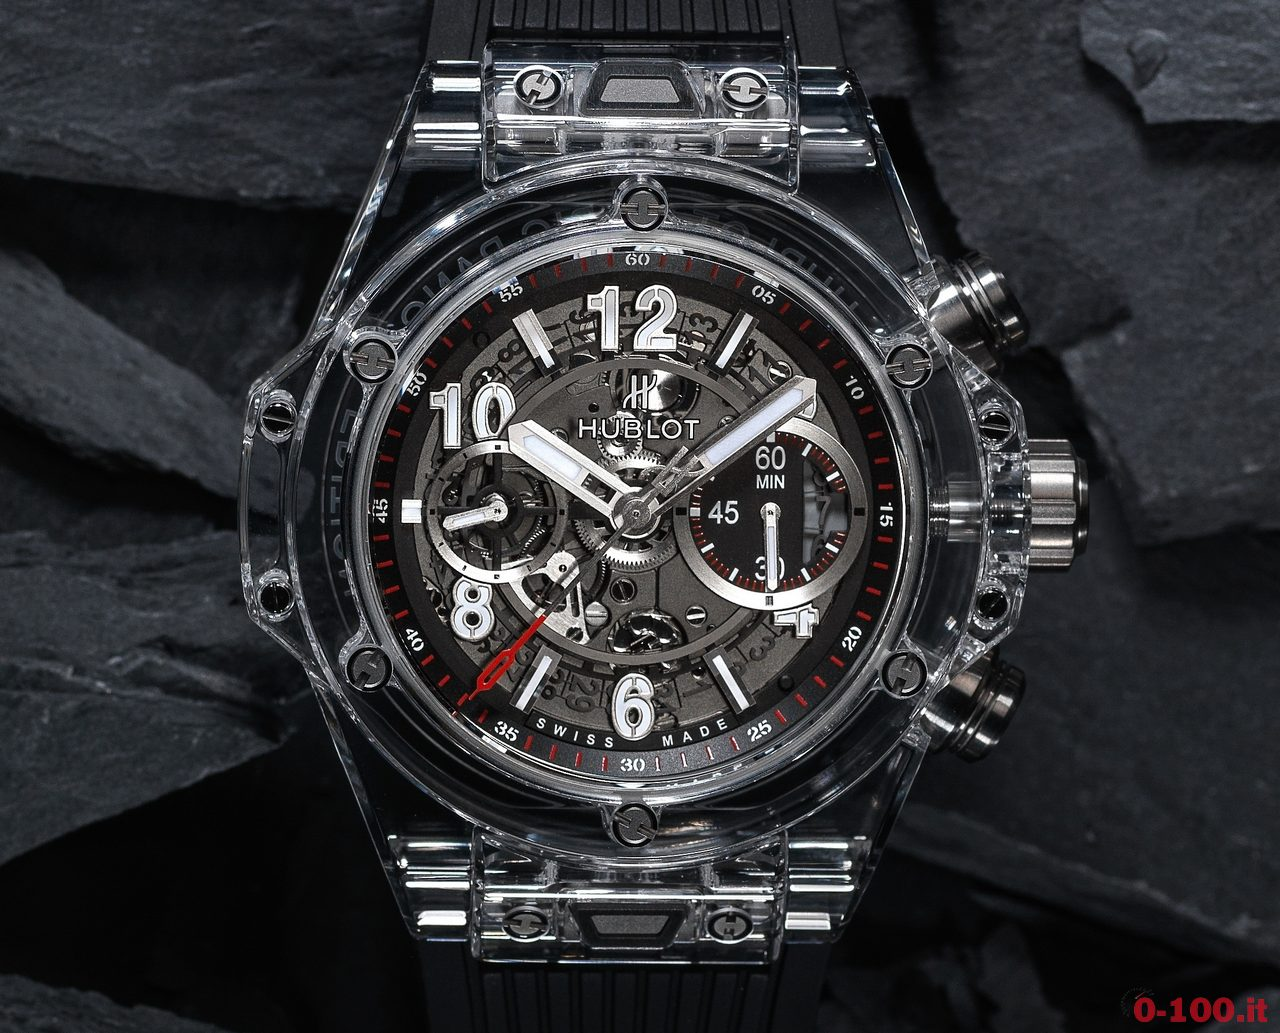 hublot-big-bang-unico-magic-sapphire-limited-edition-ref-411-jx-1170-rx-prezzo-price_0-1003